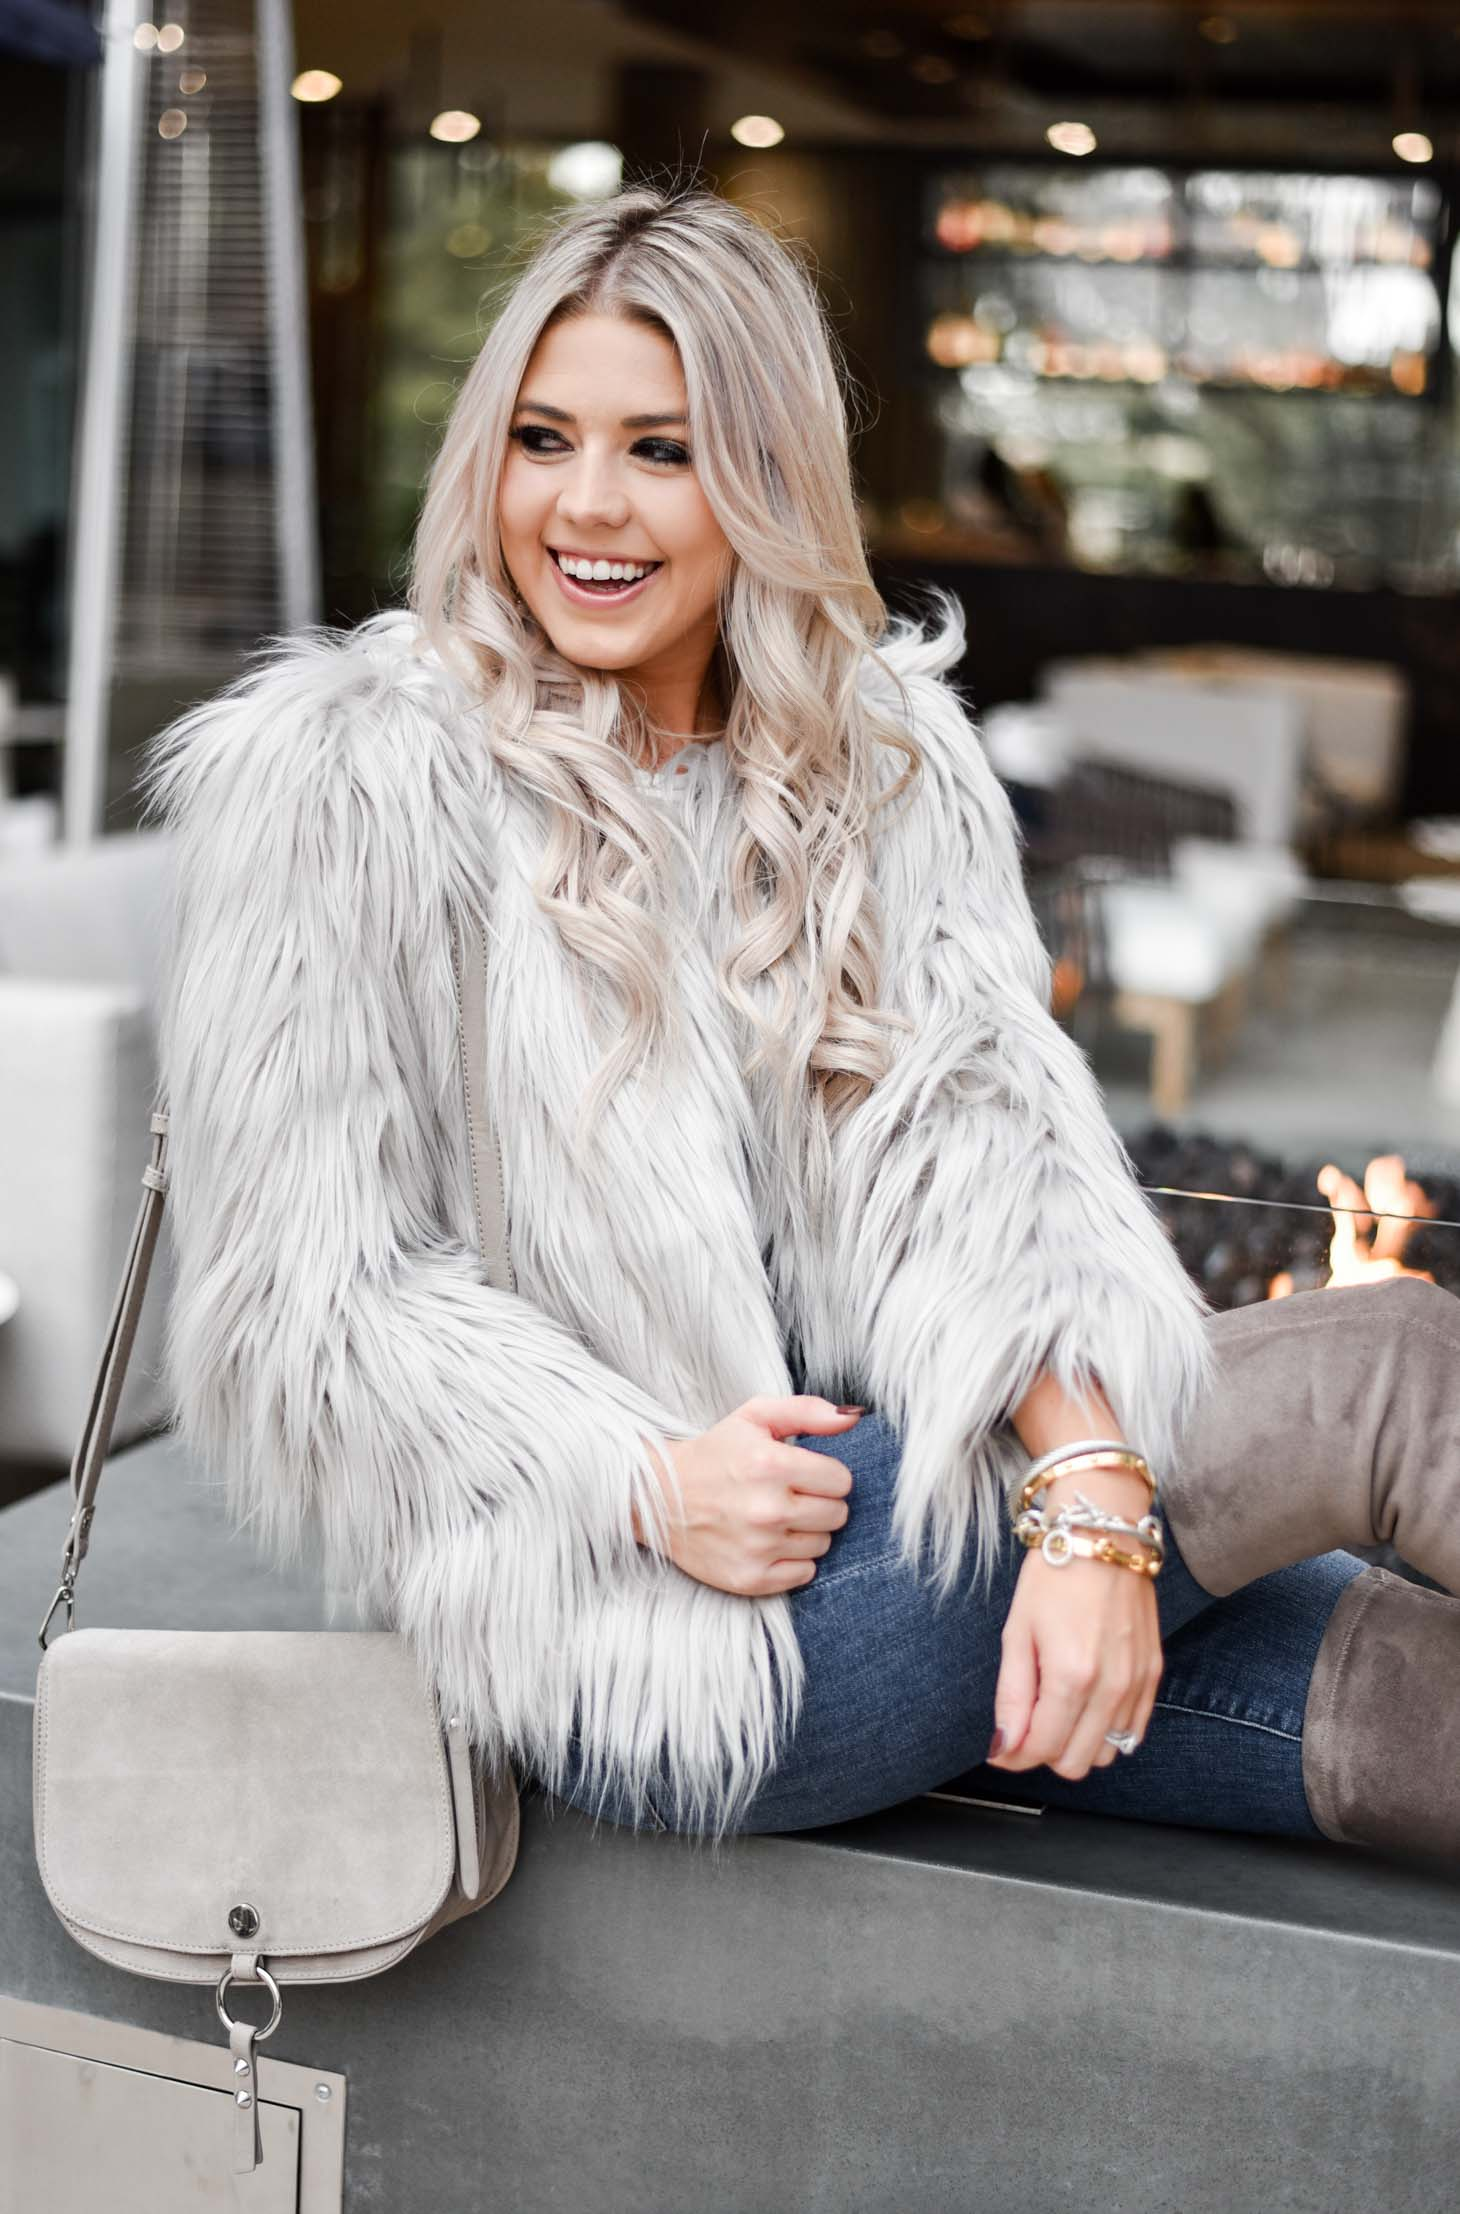 Erin Elizabeth of Wink and a Twirl shares the perfect faux fur jacket from Chicwish during her stay at AC Hotel Phoenix Biltmore in Phoenix, Arizona